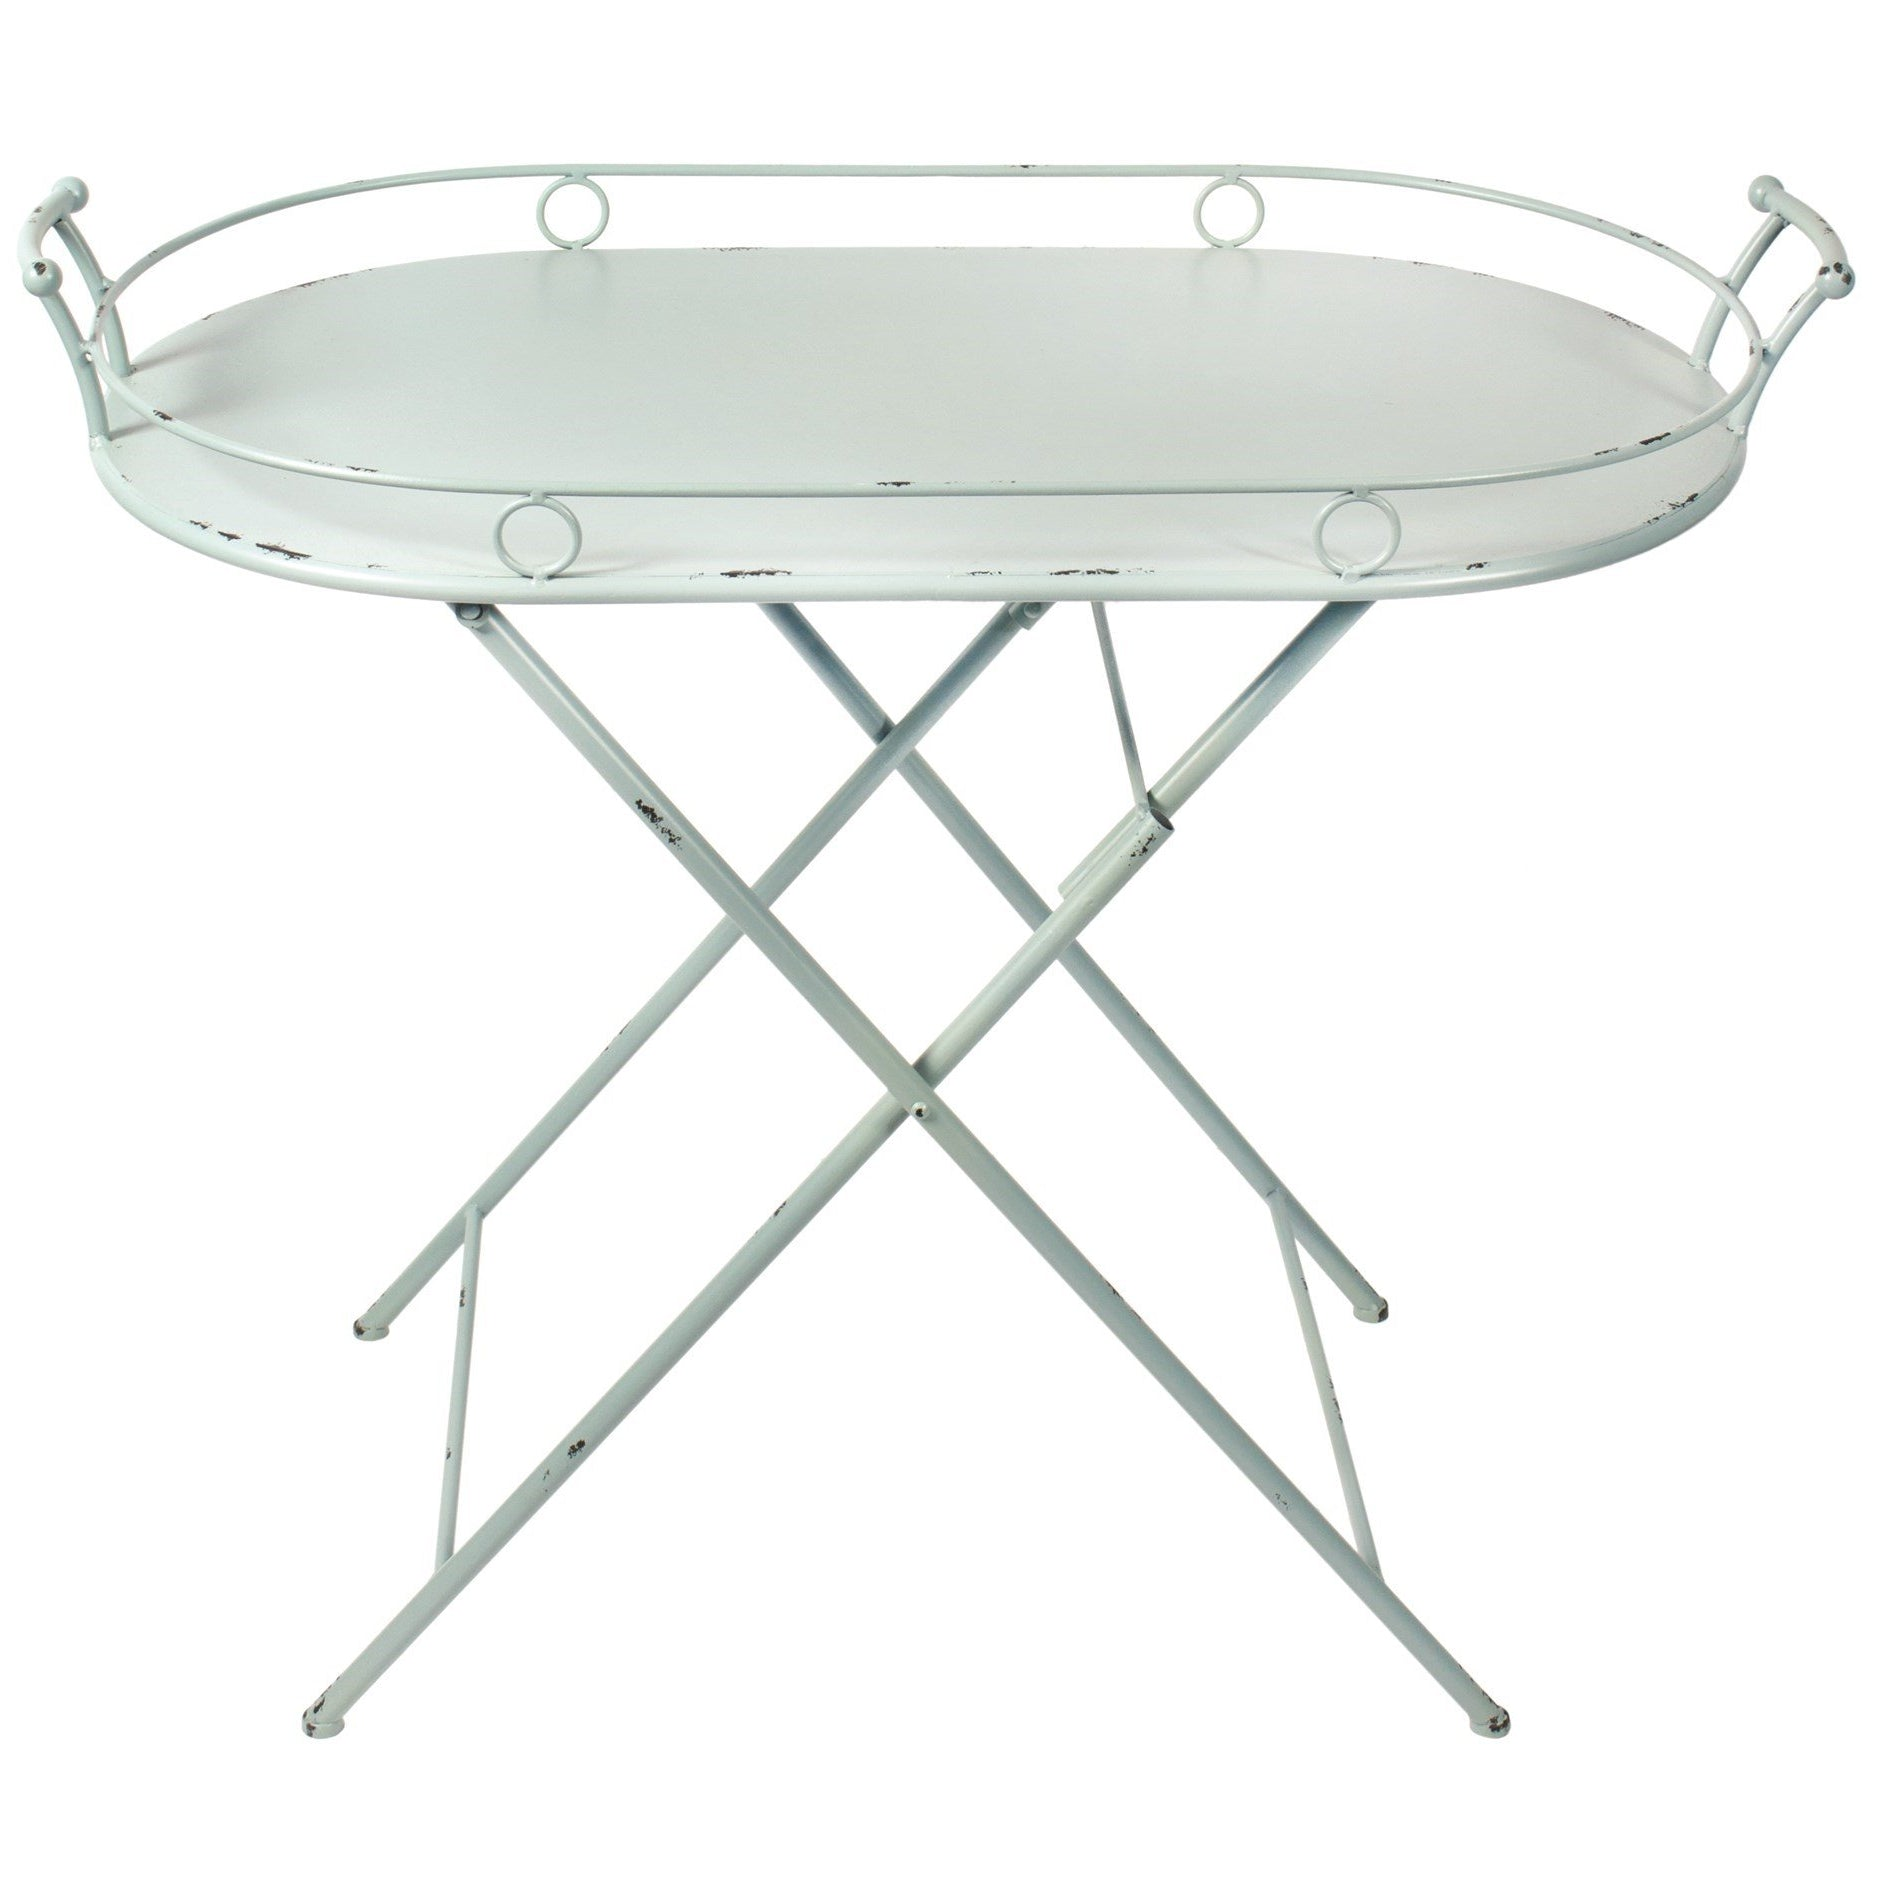 Blue Oval Folding Table